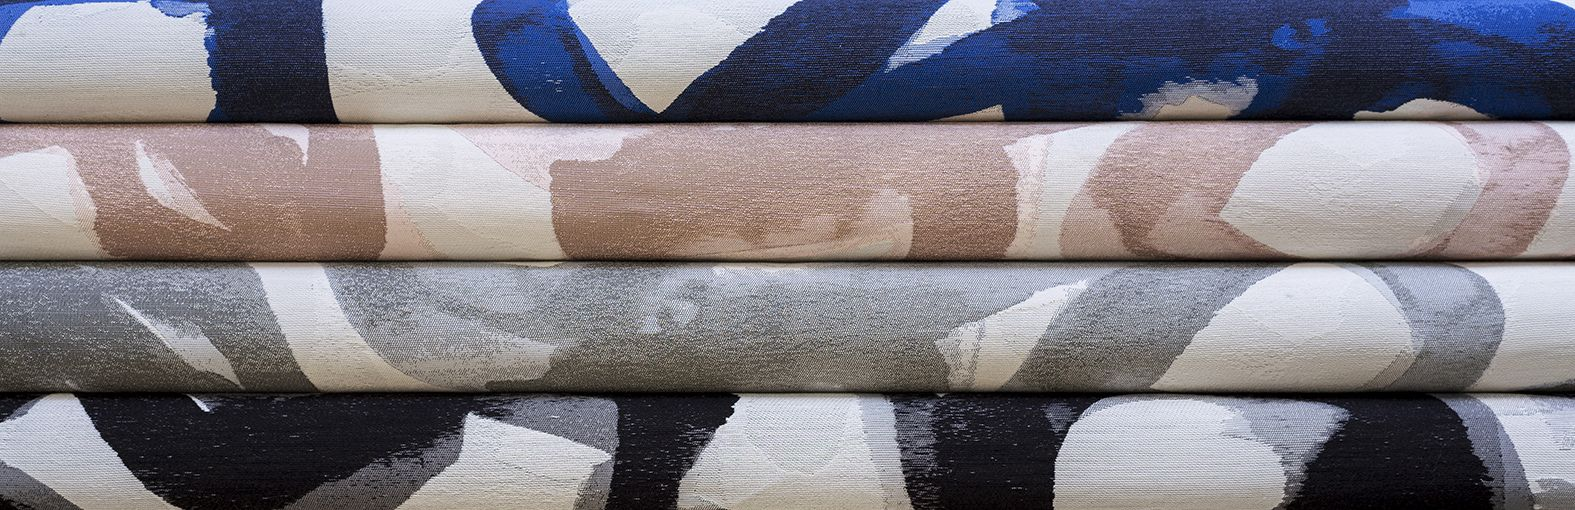 Canvas Fabric From The Pure Collection By Mokum Available From James Dunlop Textiles Upholstery Drapery